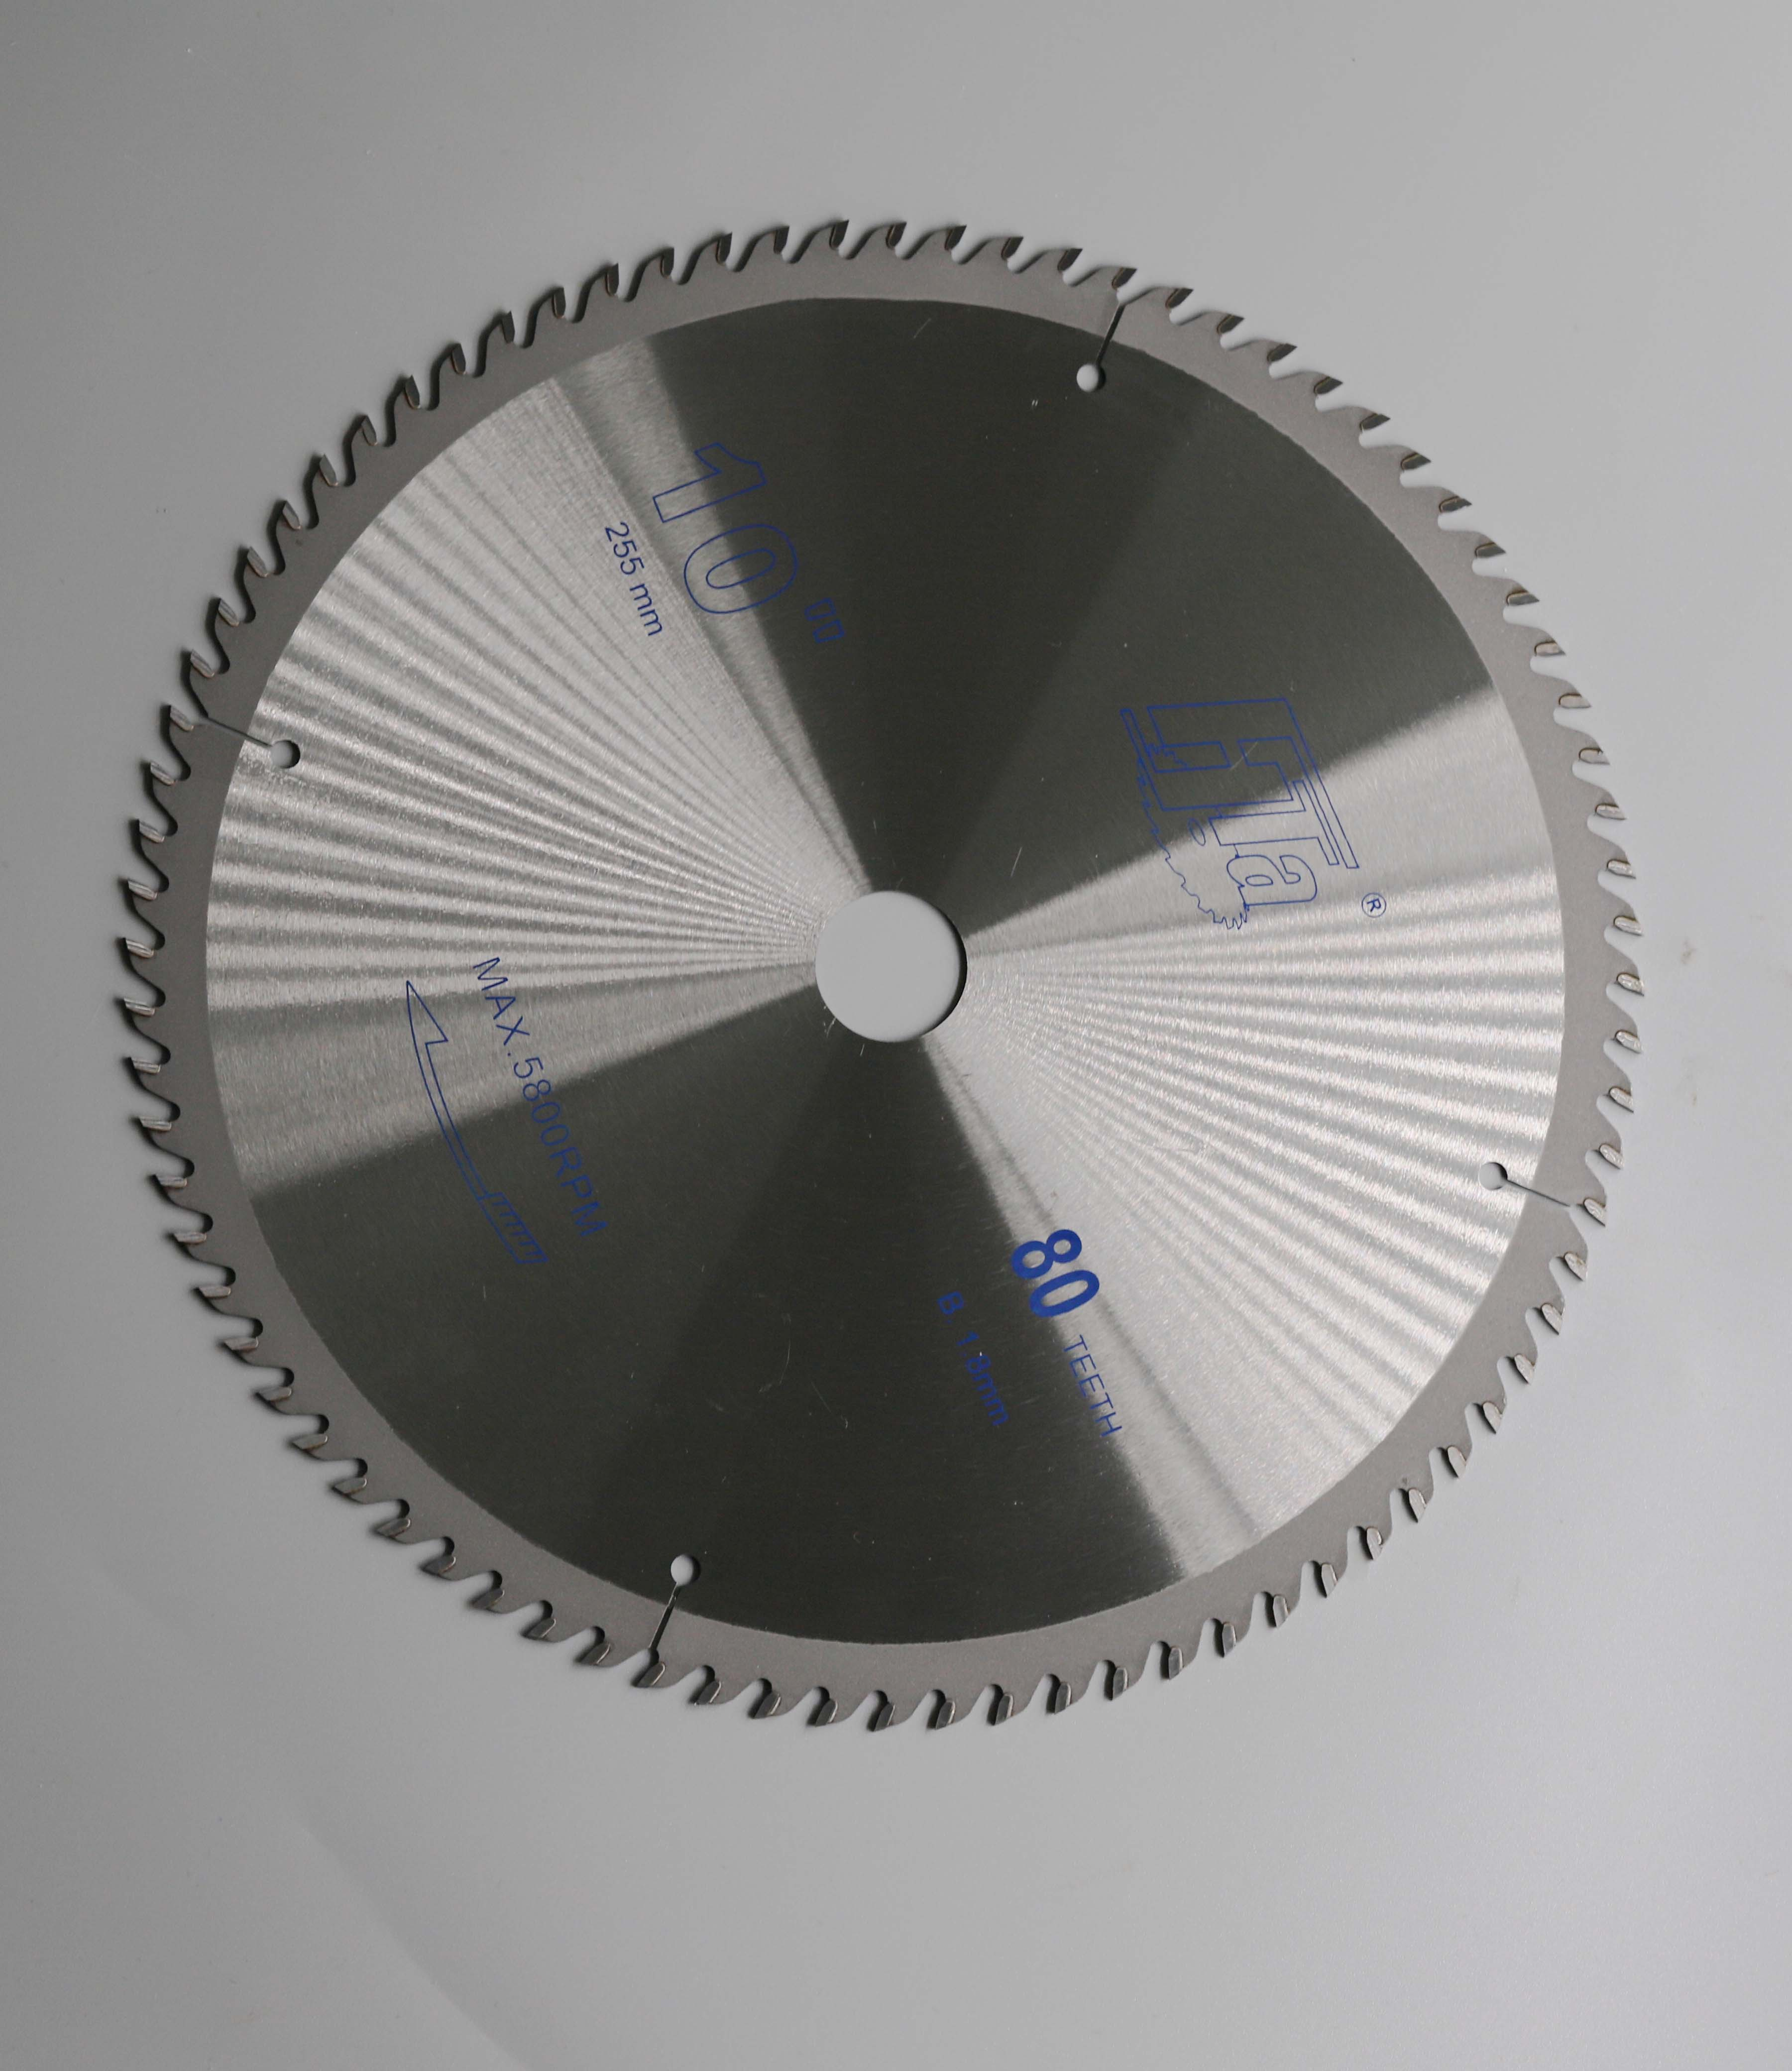 Carbide Tipped Circular Saw Blades can be custom-made